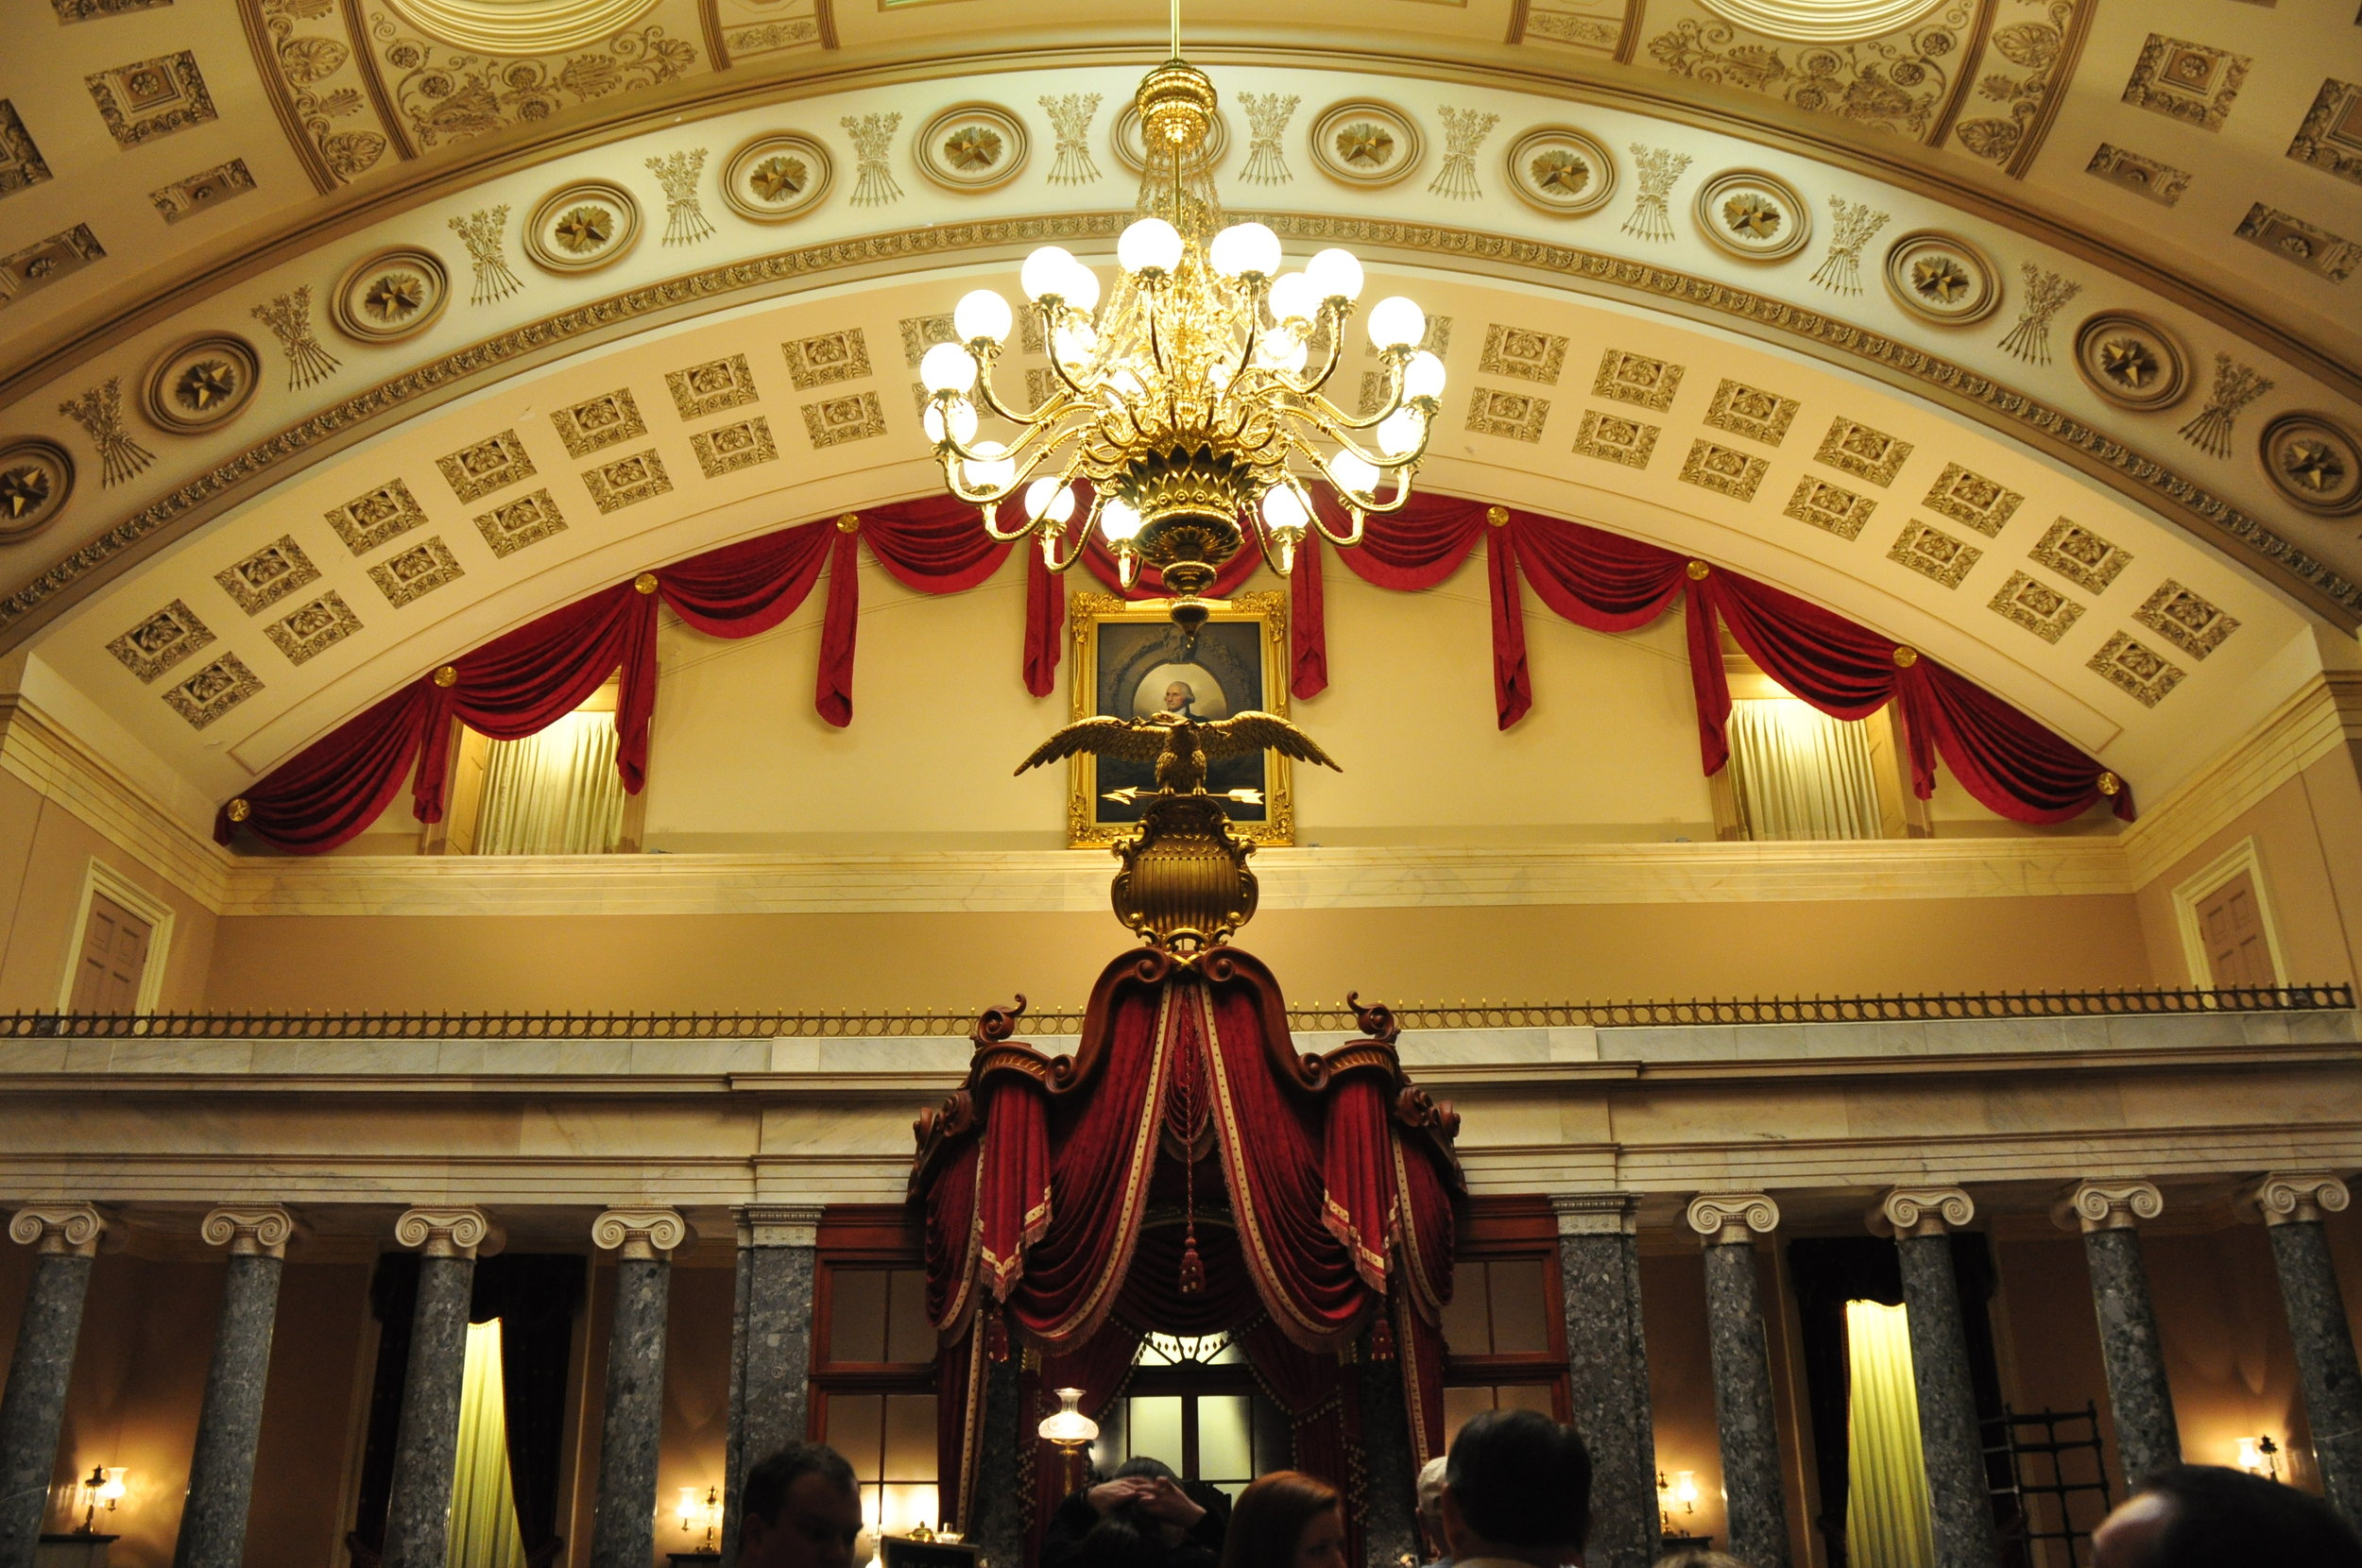 Old_US_Senate_chambers_front_view.jpg